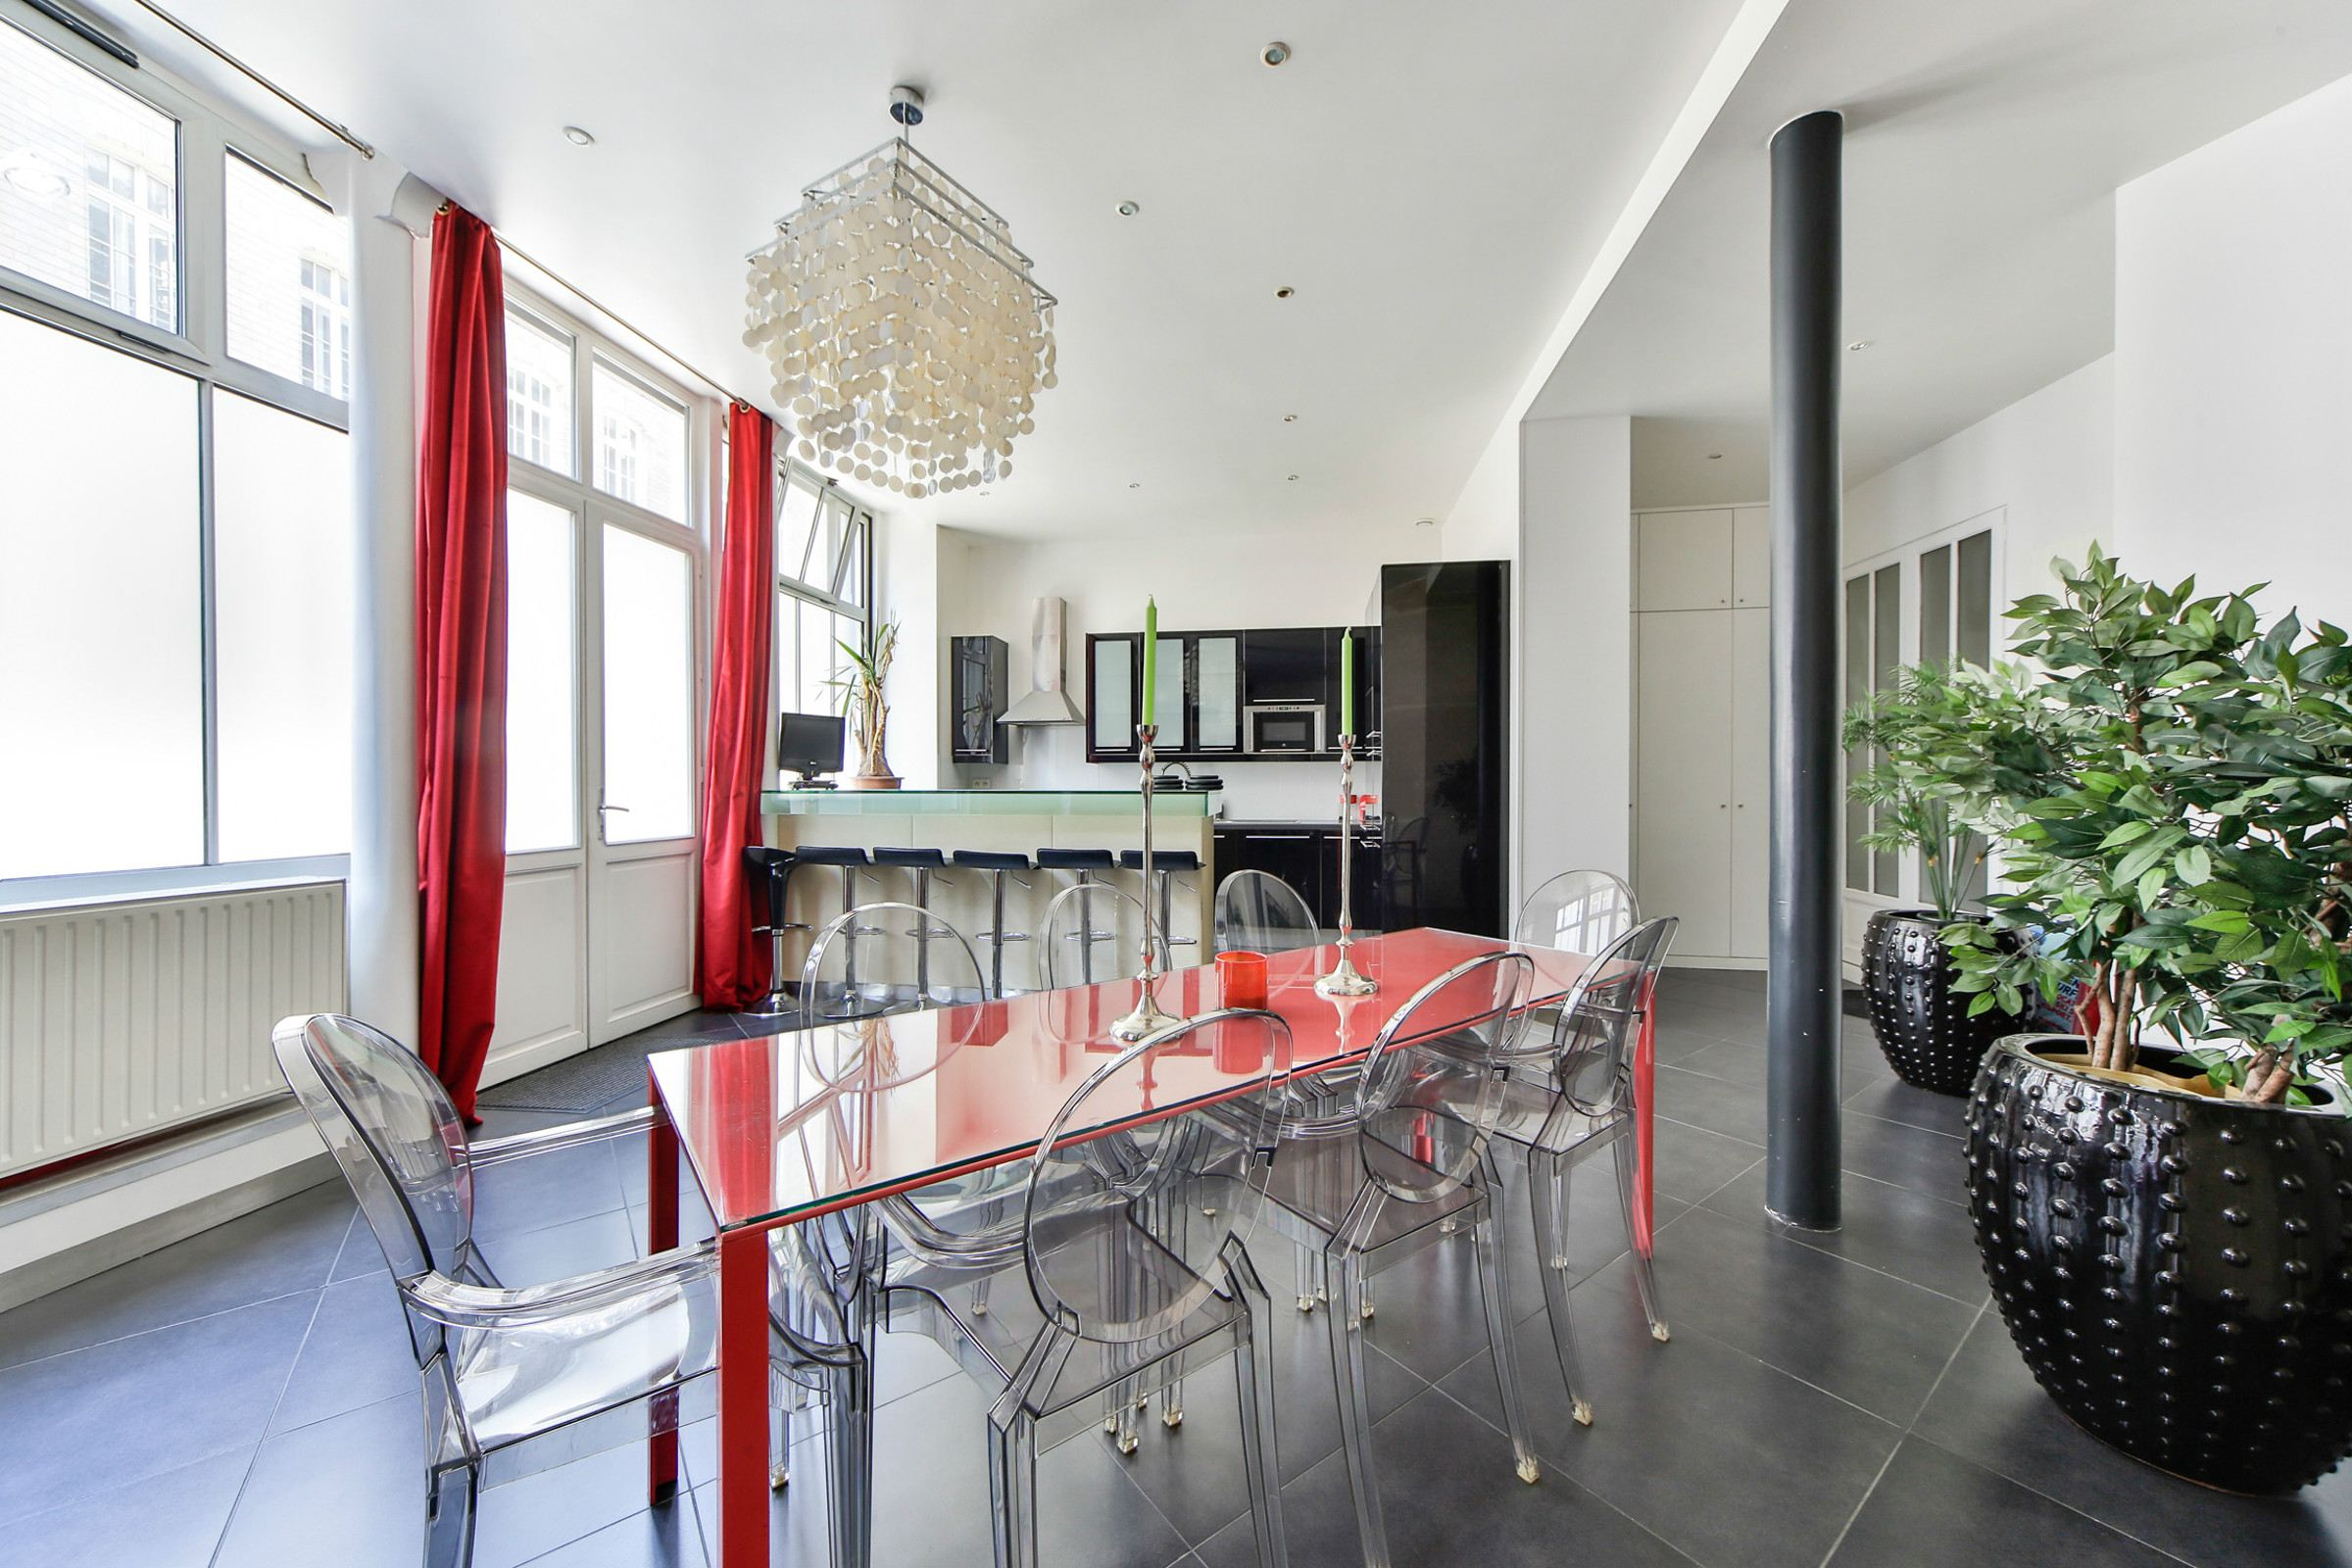 Property For Sale at Paris 8 - St-Augustin. Apartment Loft style renovated by architect.